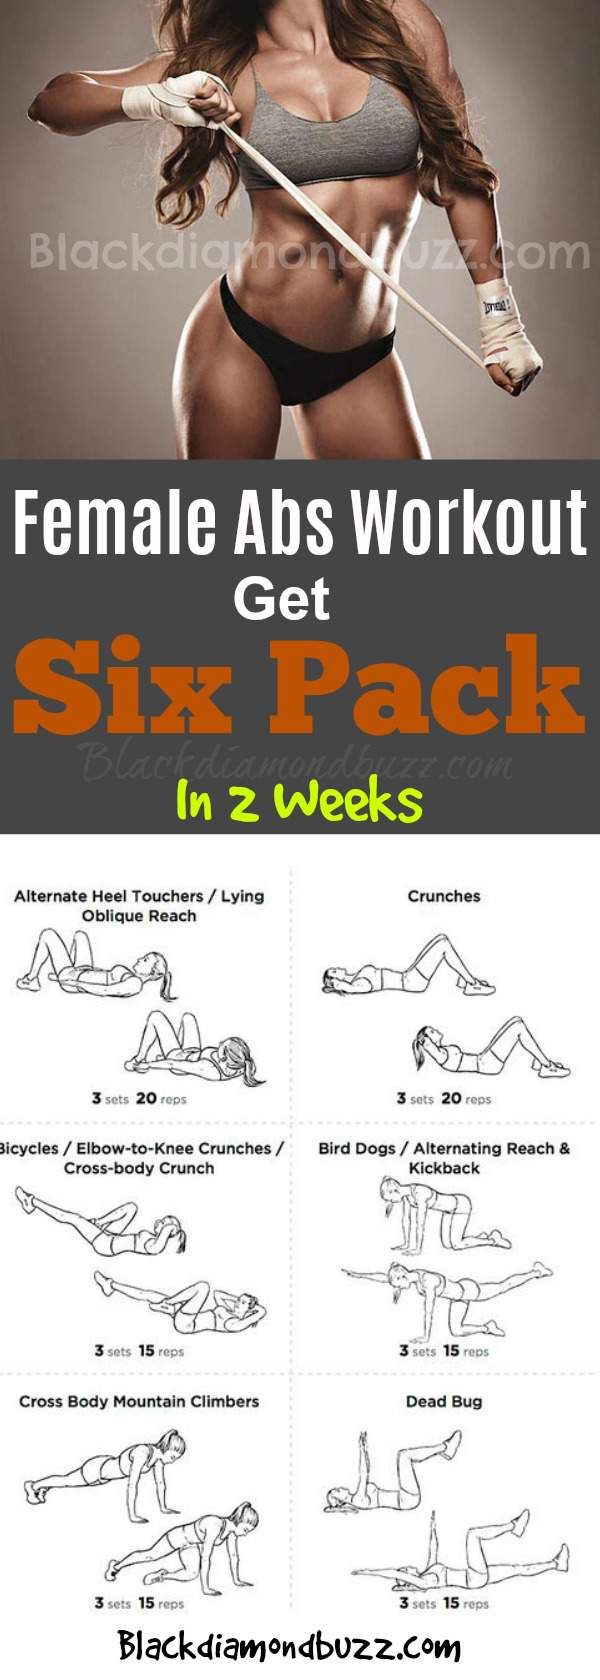 how to get a six pack fast for girls